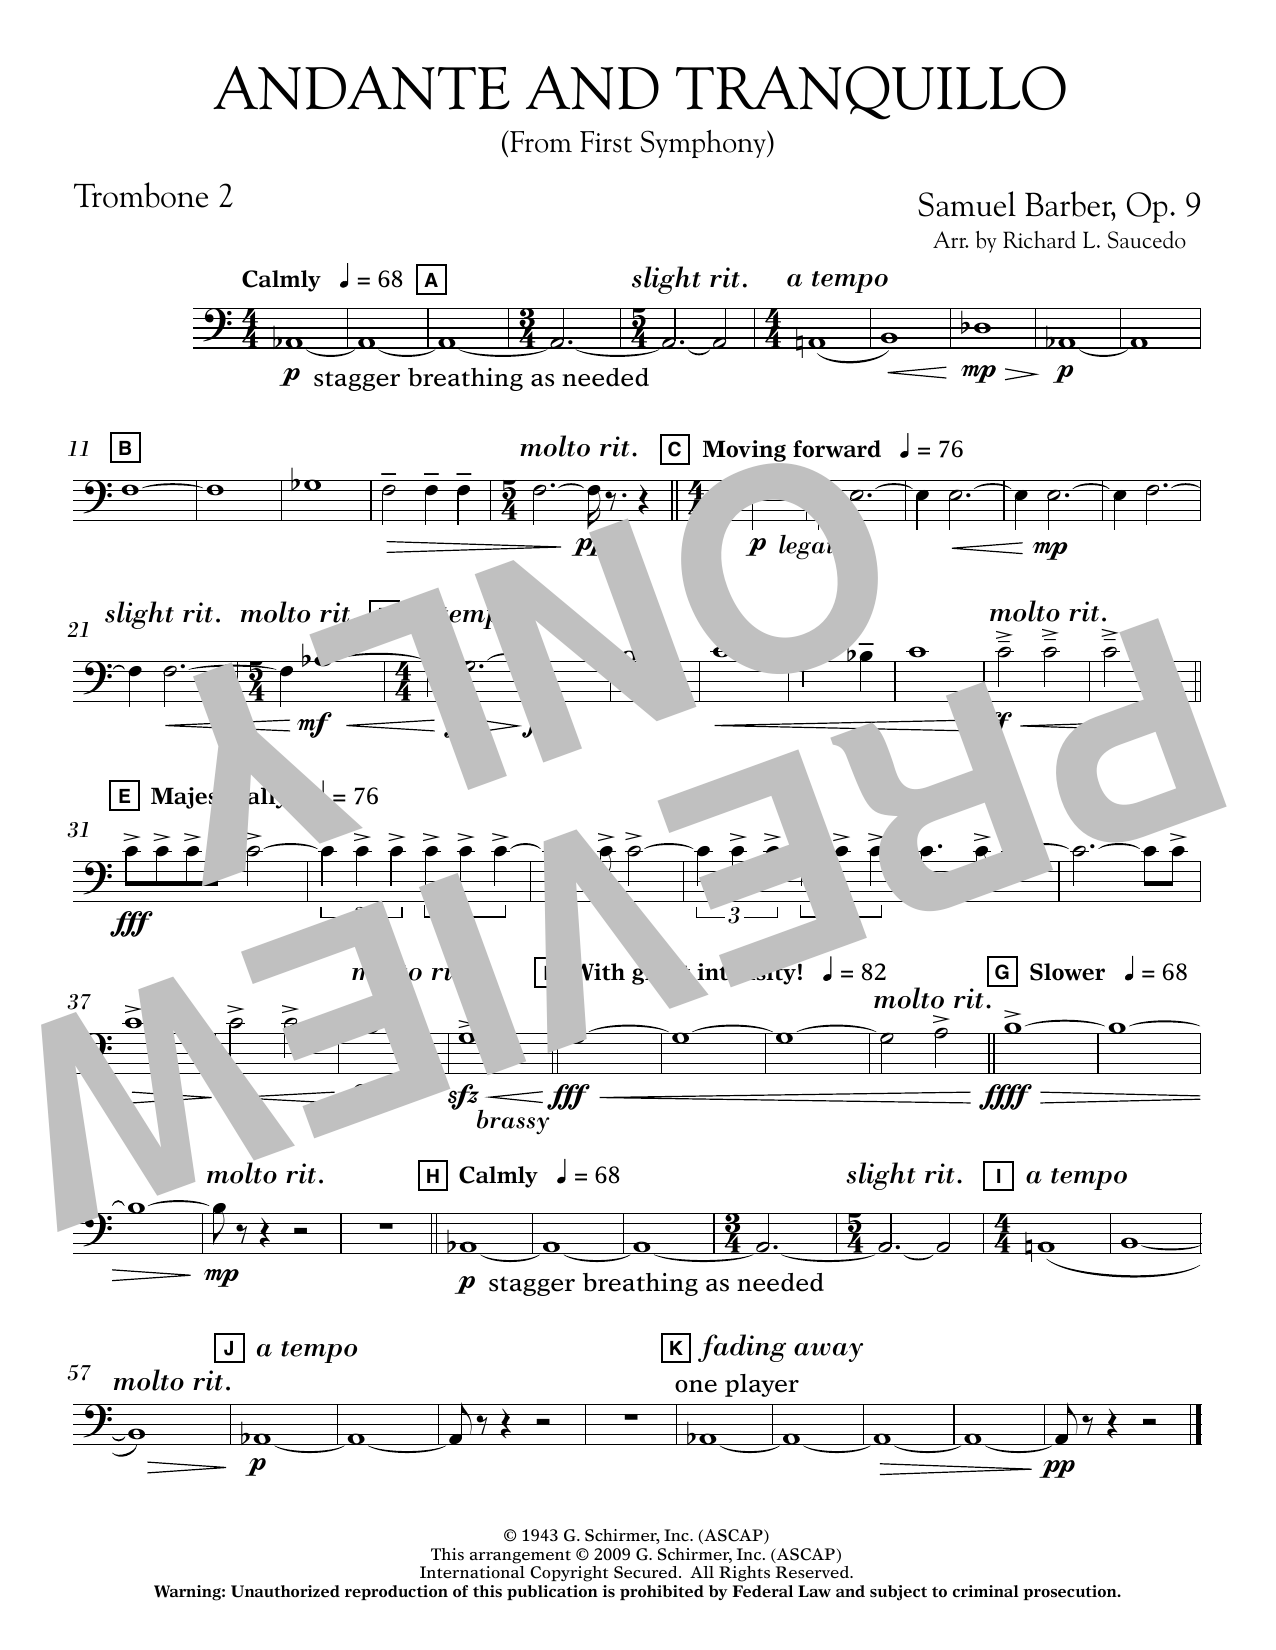 Andante and Tranquillo (from First Symphony) - Trombone 2 Sheet Music